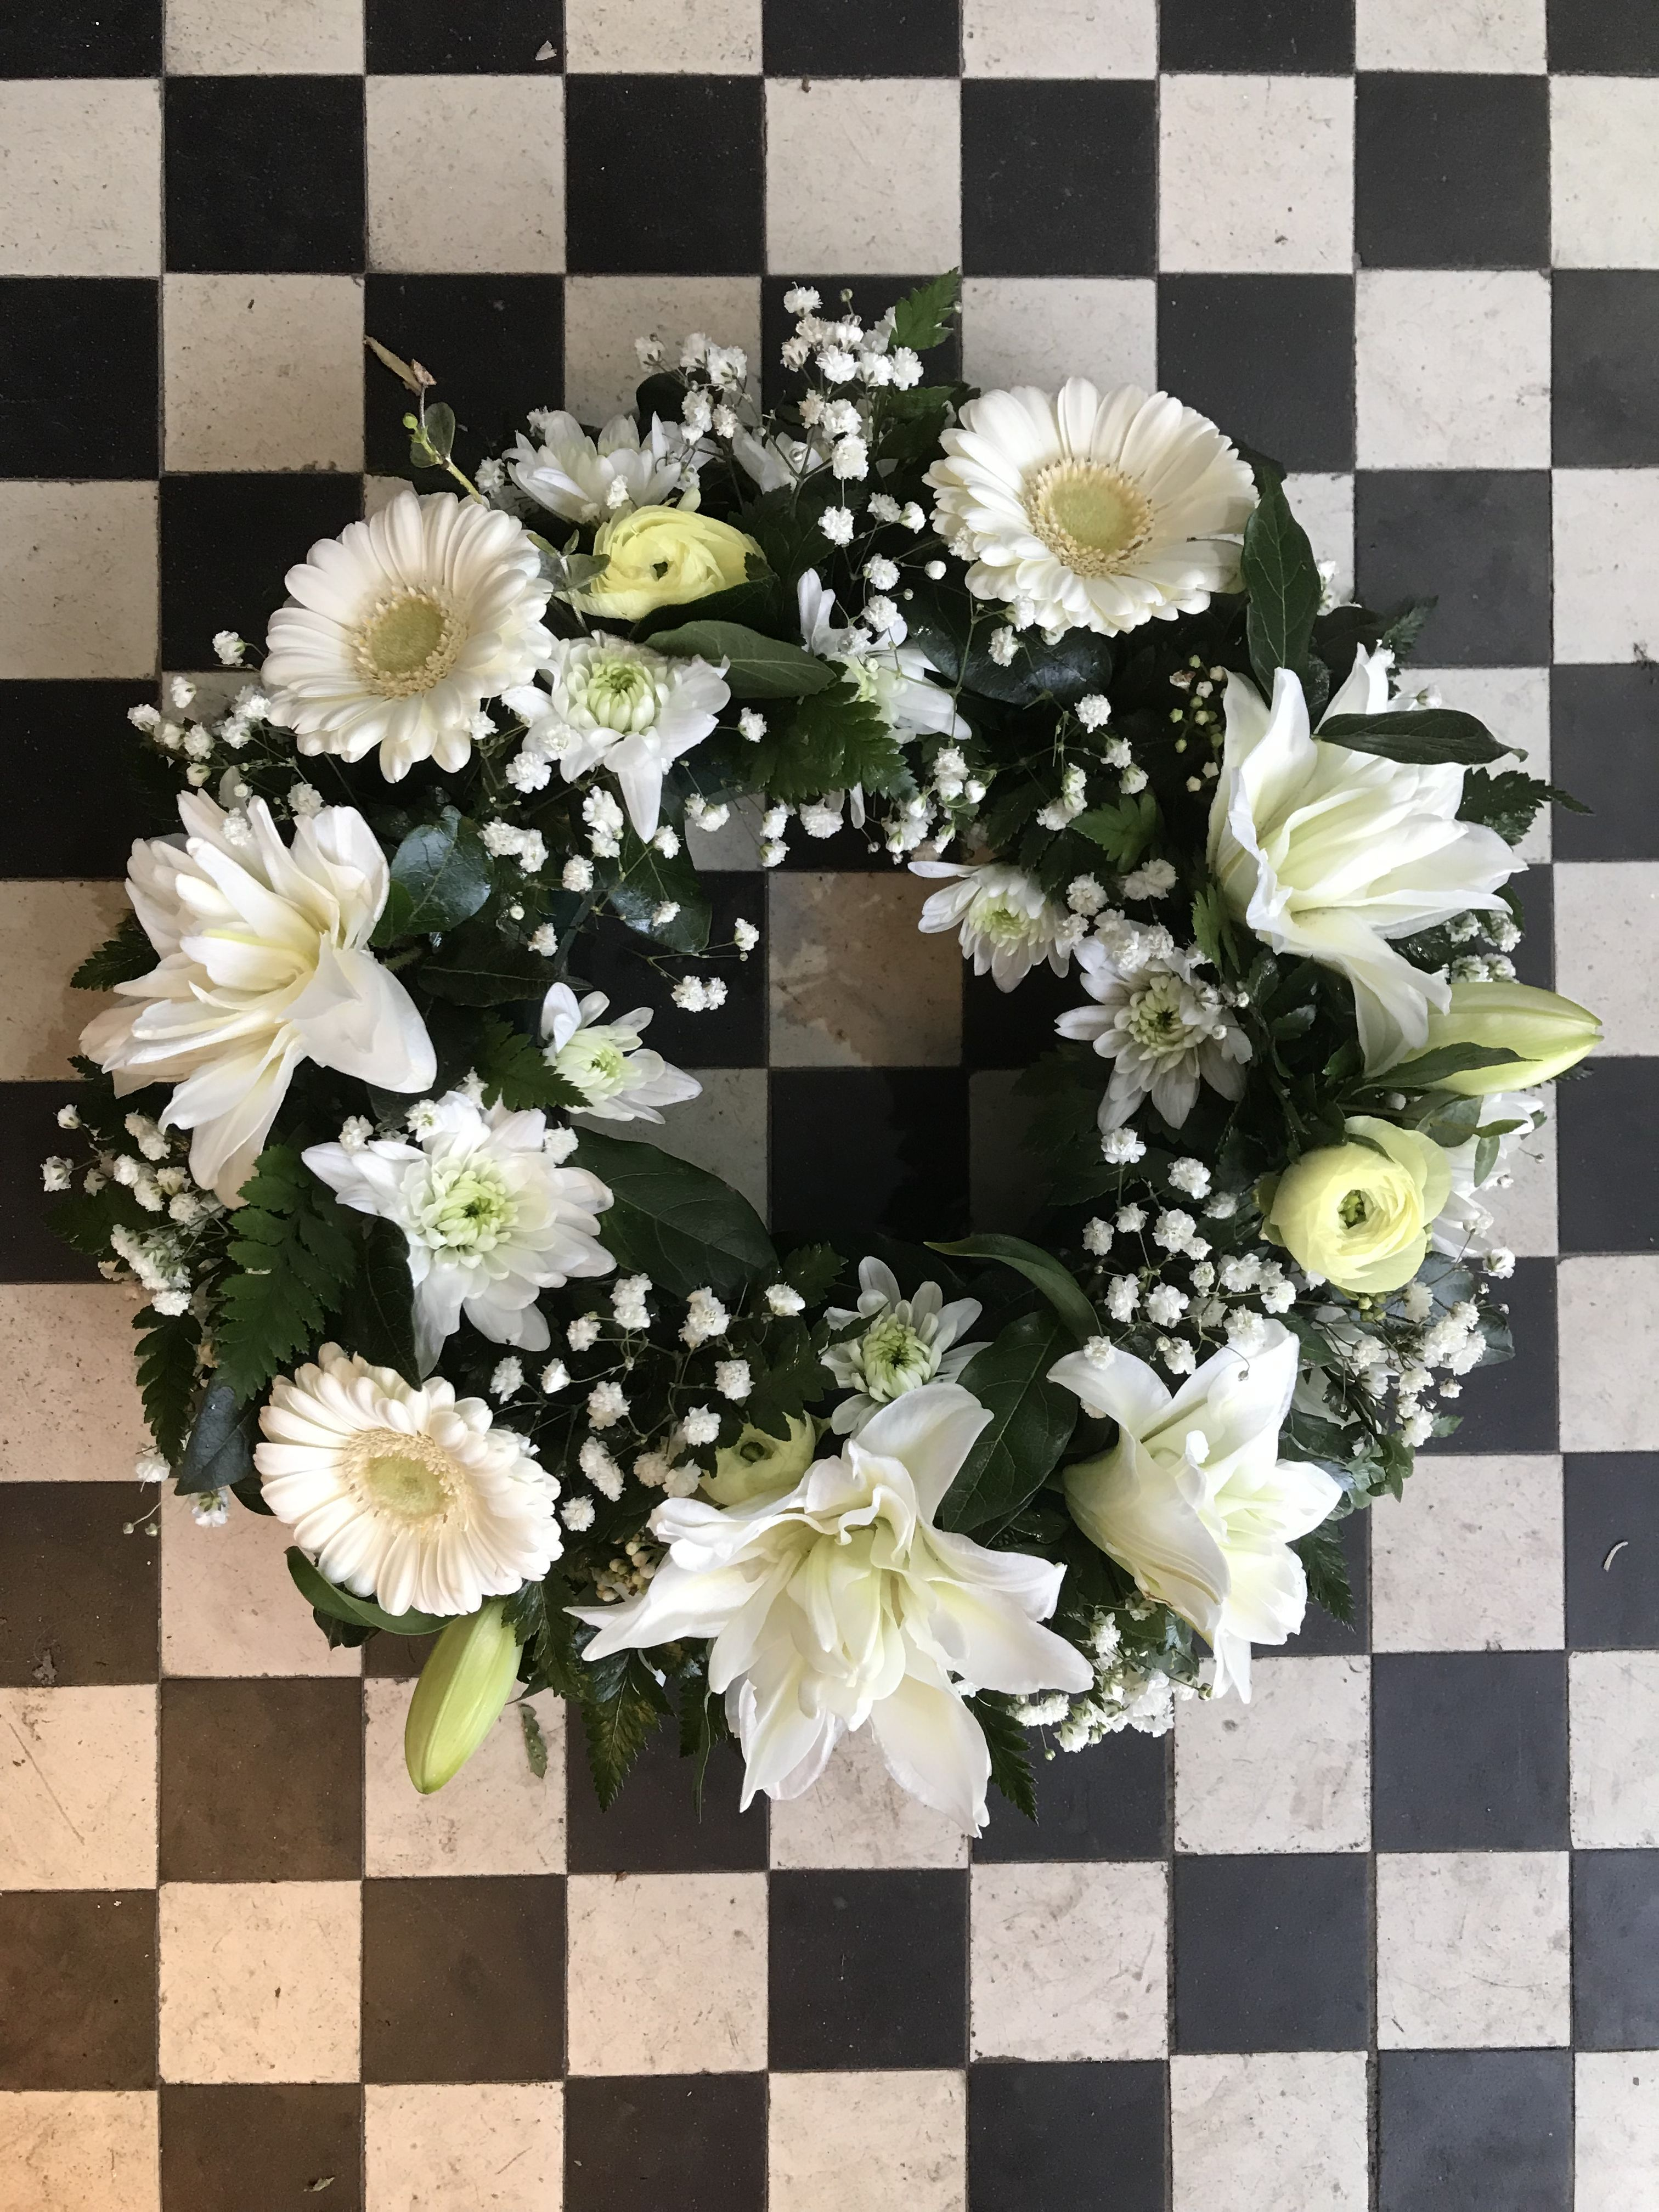 Pin by Lotty's Flowers on Funeral sympathy Lotty's flowers